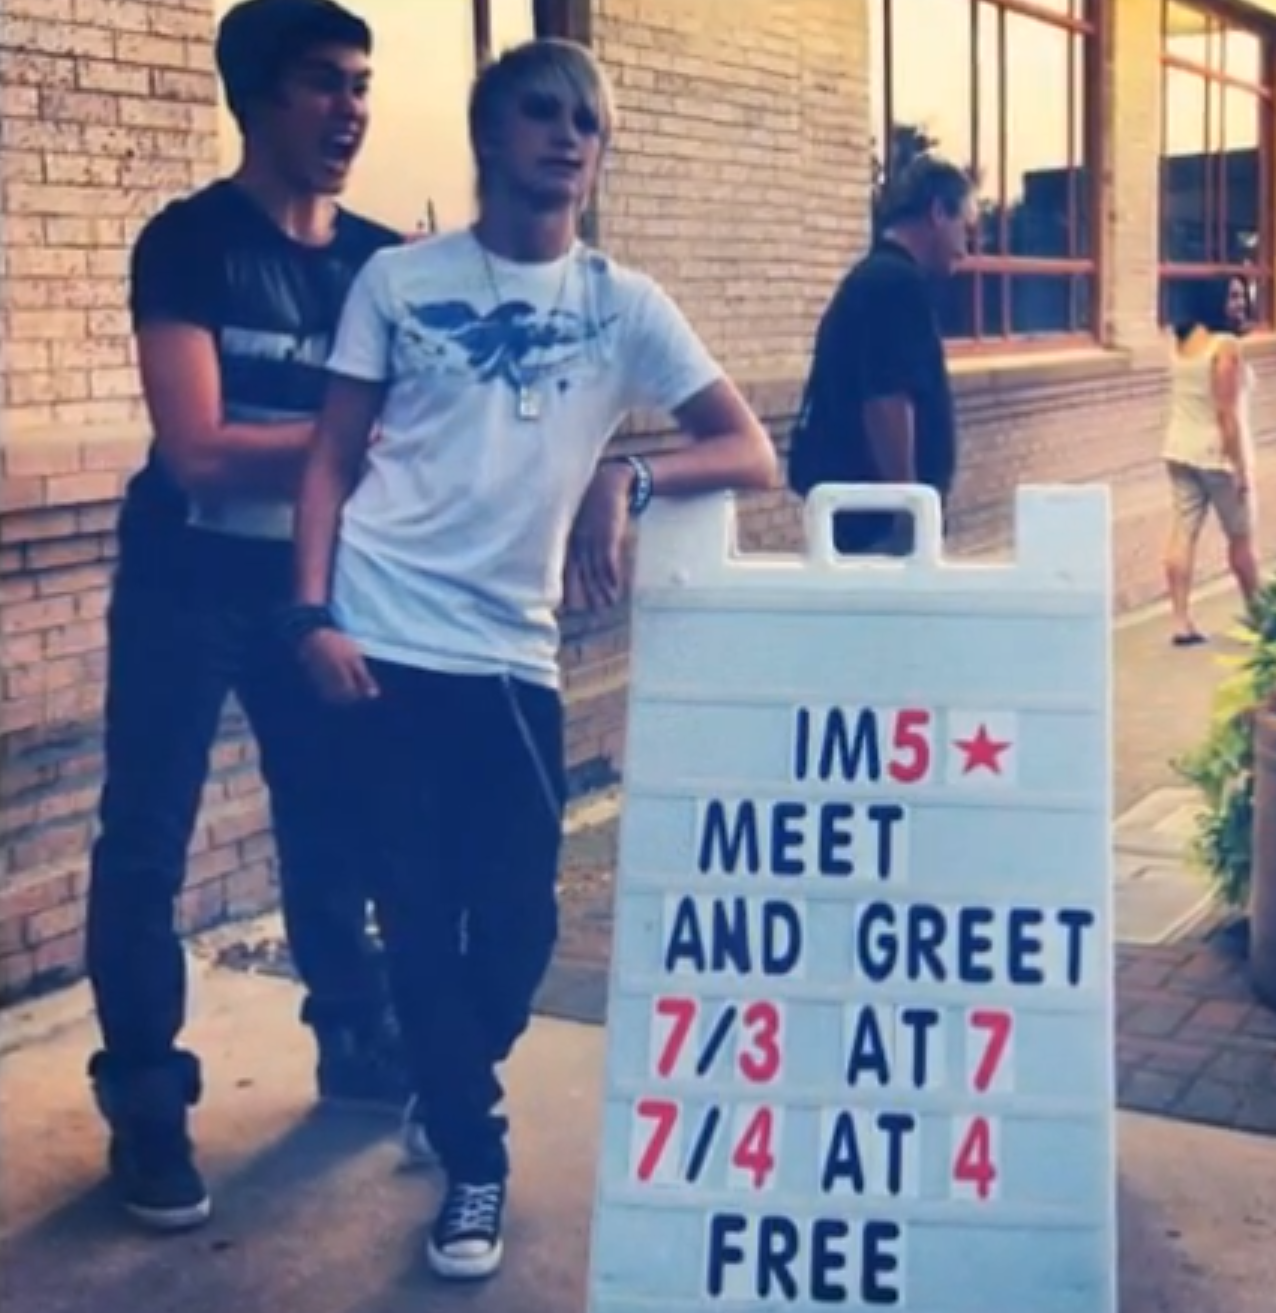 FREE MEET AND GREET?! WHERE WAS THIS WHEN I DISCOVERED THEM?!